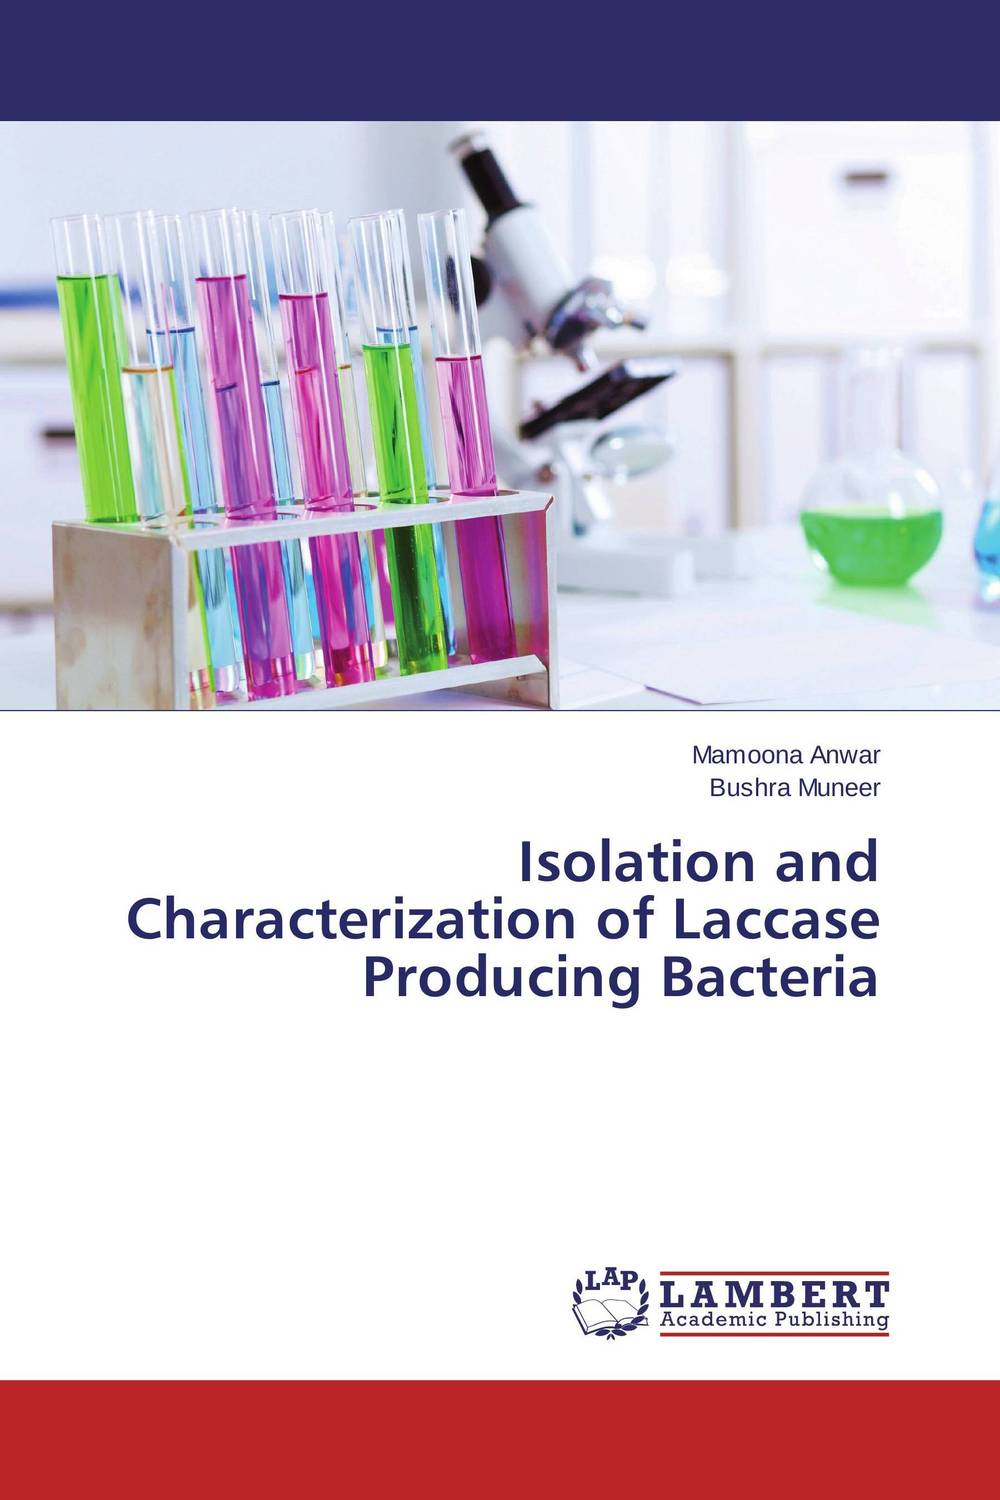 все цены на  Isolation and Characterization of Laccase Producing Bacteria  в интернете